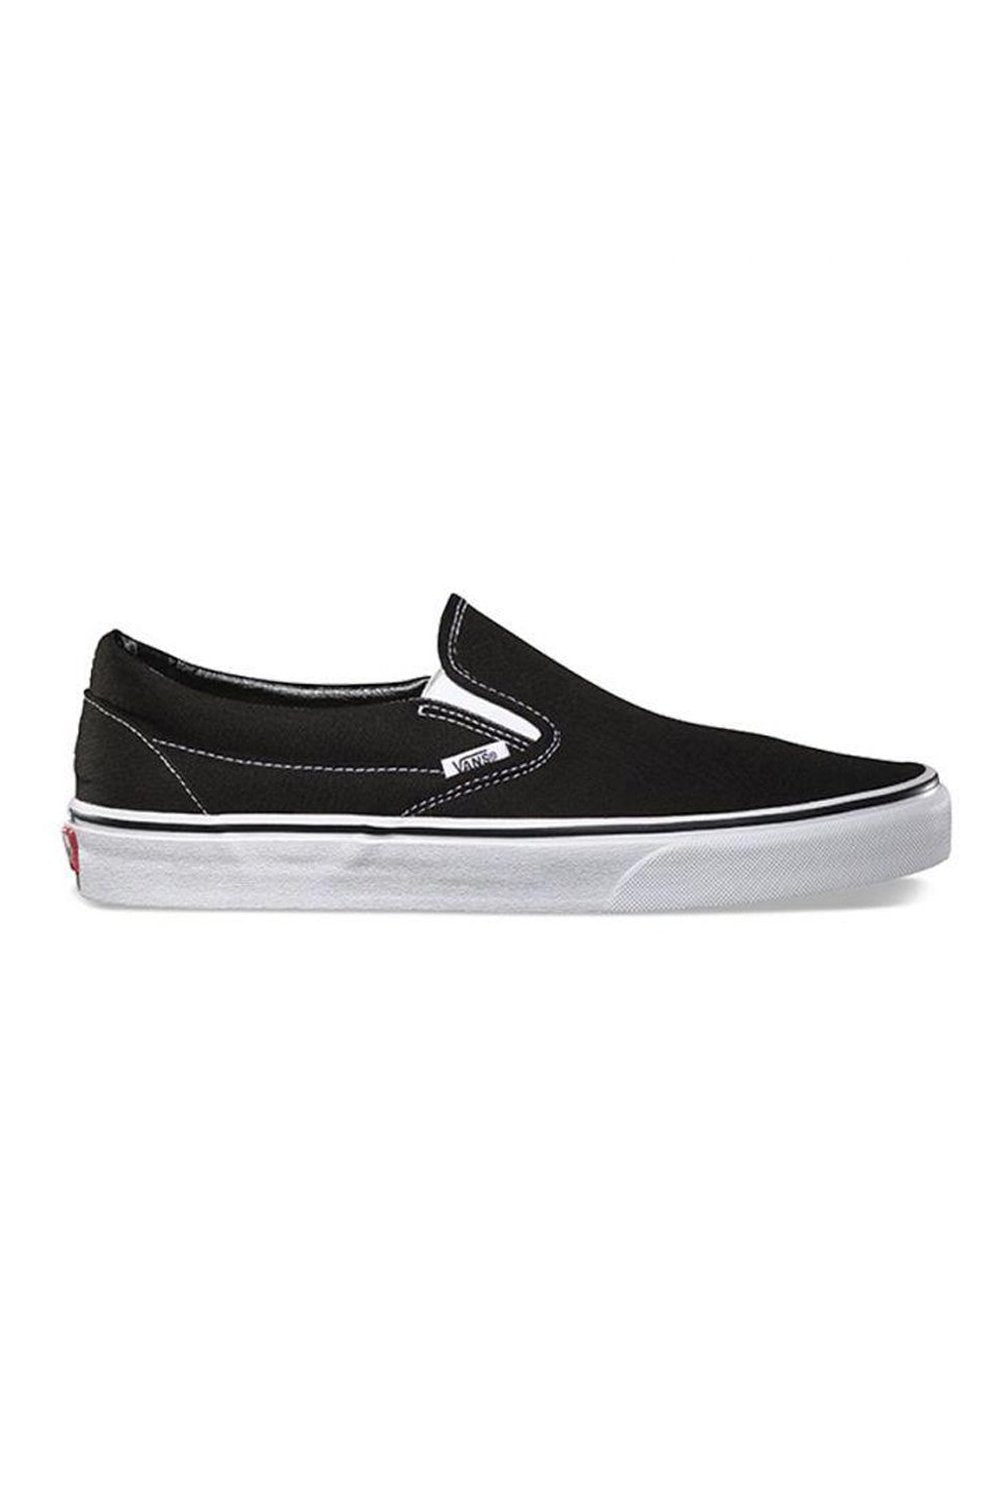 Vans Classic Slip On (CSO) Black Shoe